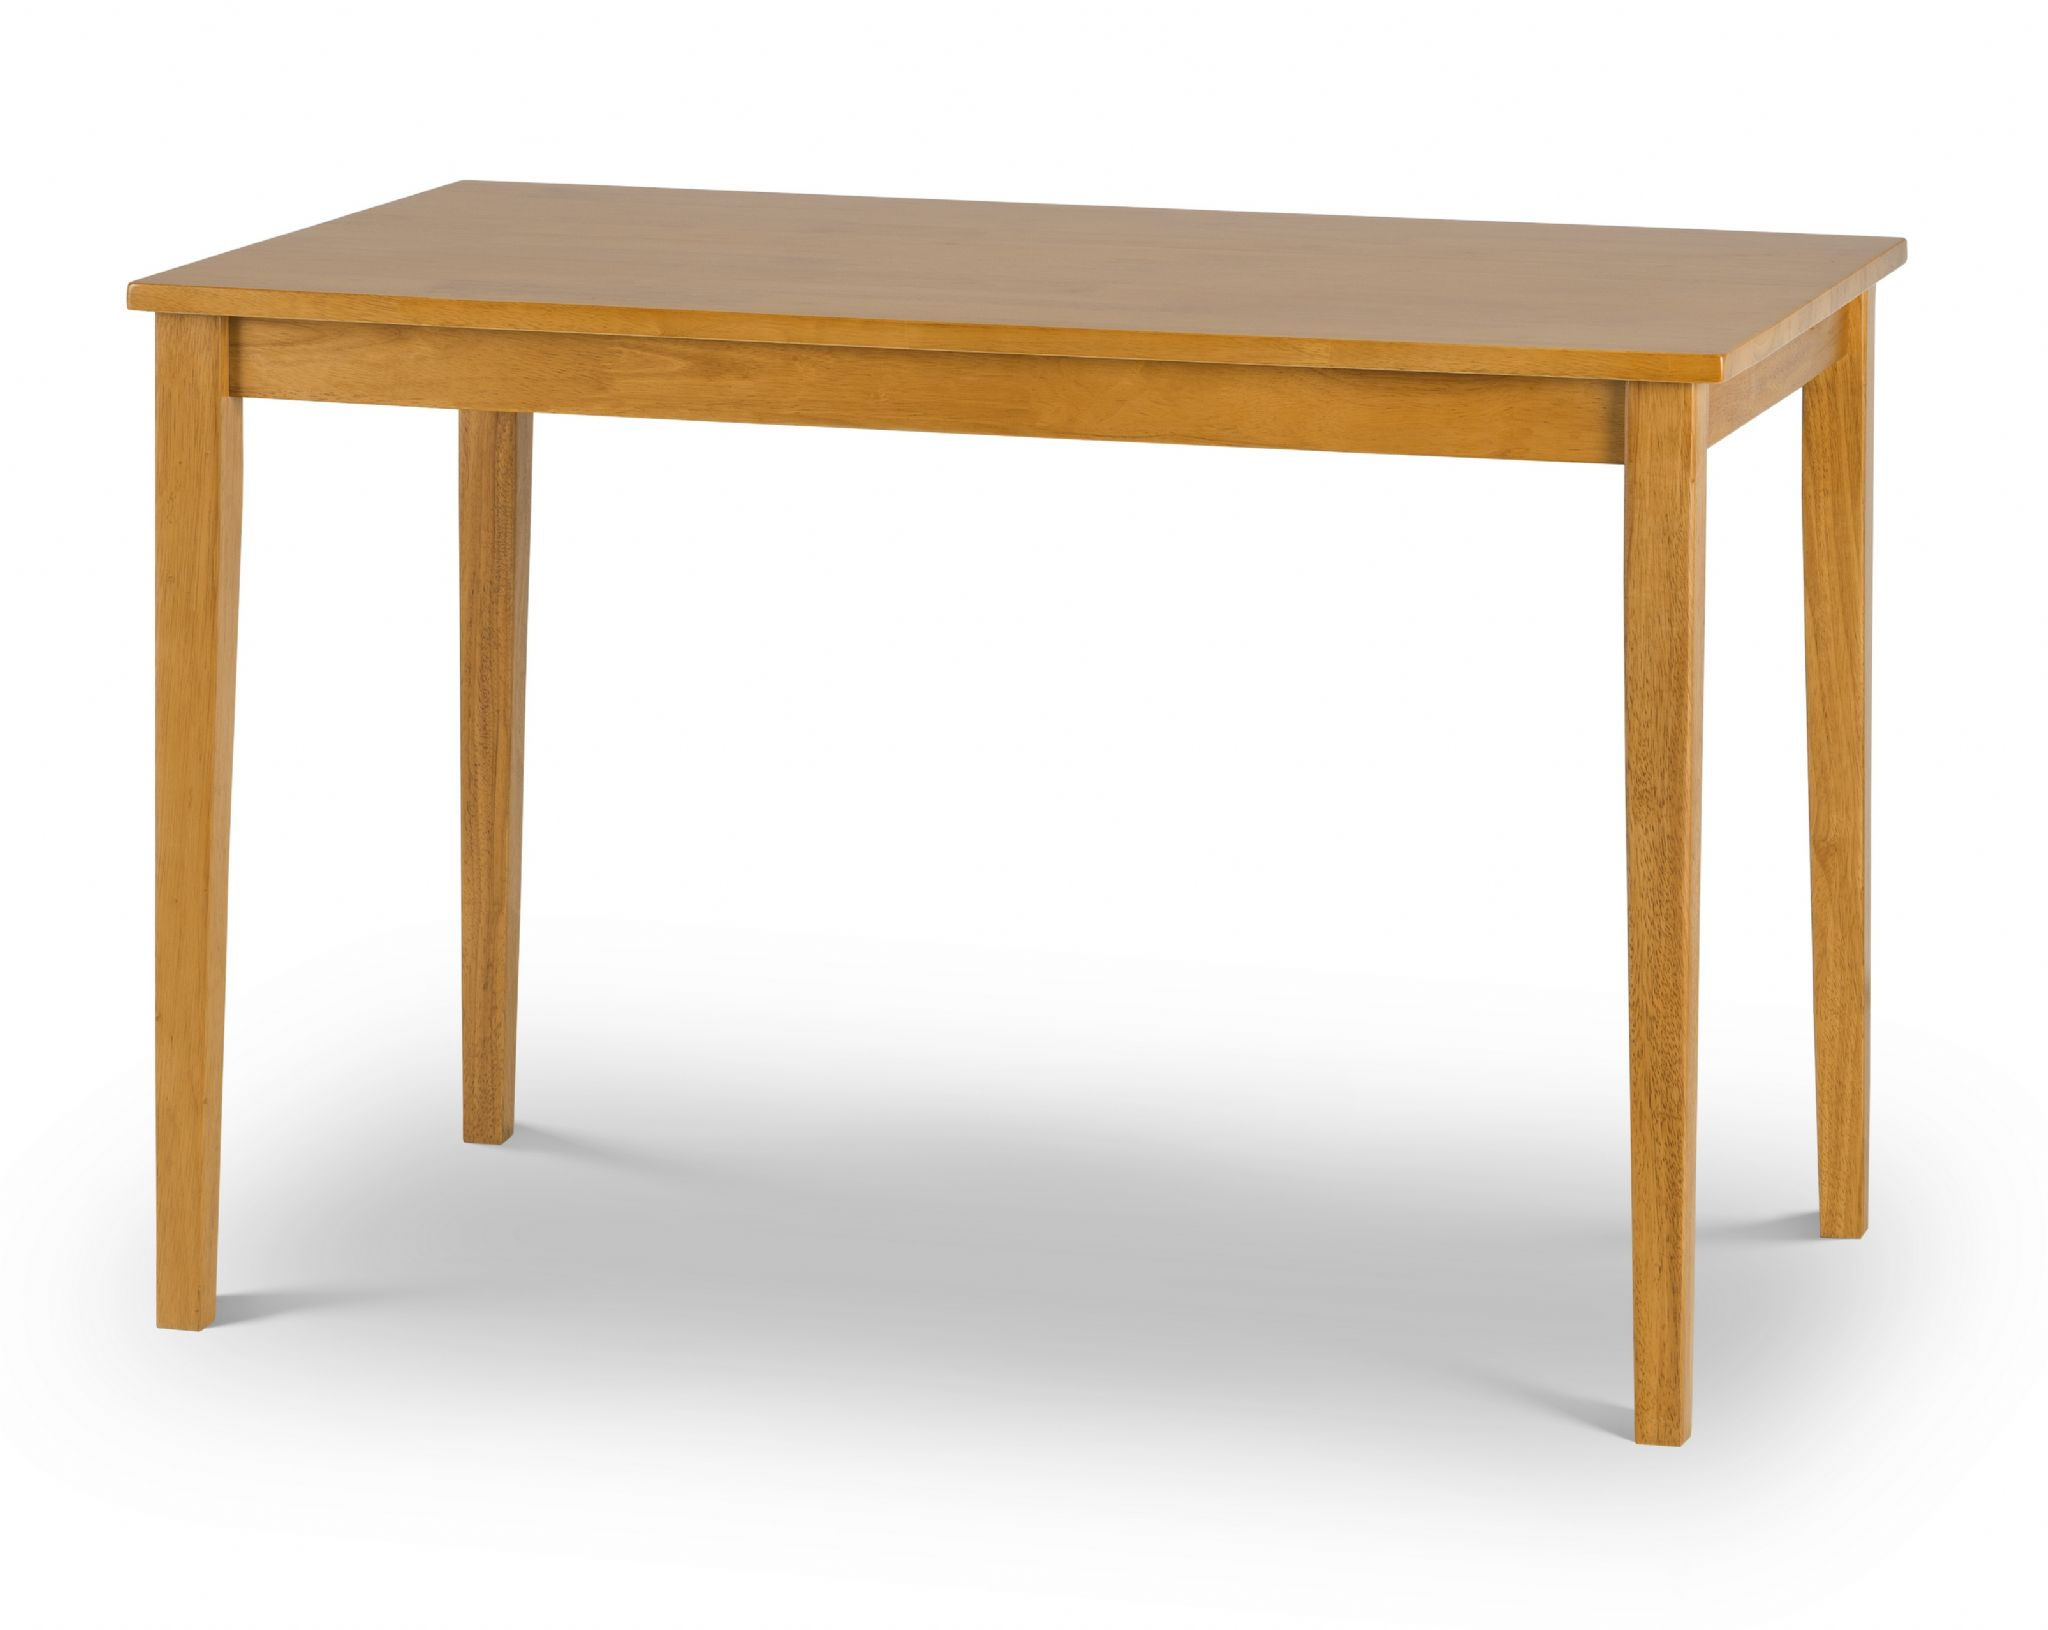 Toledo natural light oak finish dining table jb153 for Sideboard toledo